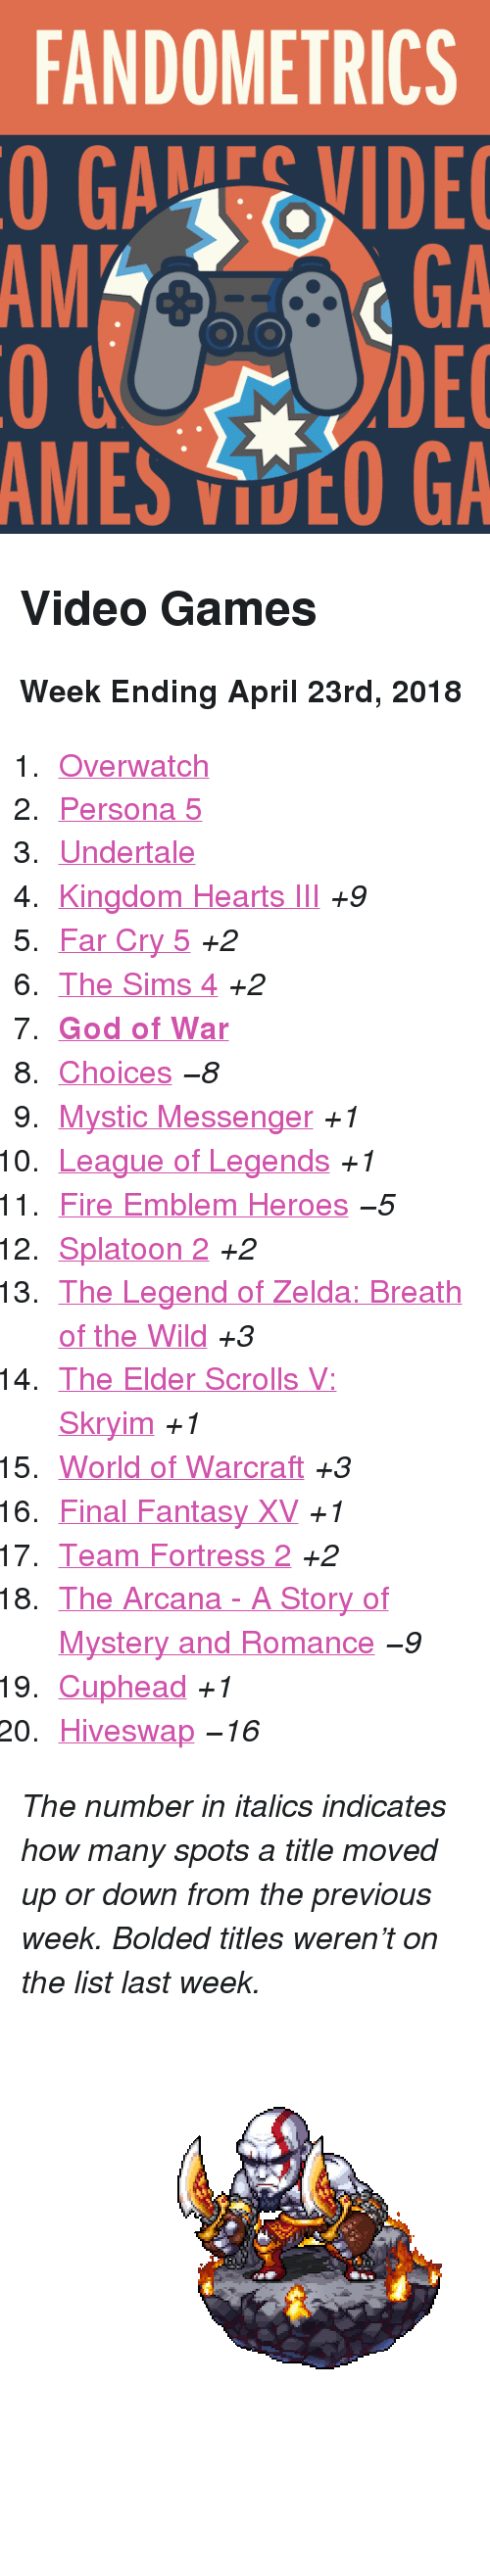 "the legend of zelda: FANDOMETRICS  GAEIDE  GA  DEC  MES DCO GA  AMGA <h2>Video Games</h2><p><b>Week Ending April 23rd, 2018</b></p><ol><li><a href=""http://www.tumblr.com/search/overwatch"">Overwatch</a></li>  <li><a href=""http://www.tumblr.com/search/persona%205"">Persona 5</a></li>  <li><a href=""http://www.tumblr.com/search/undertale"">Undertale</a></li>  <li><a href=""http://www.tumblr.com/search/kingdom%20hearts"">Kingdom Hearts III</a> <i>+9</i></li>  <li><a href=""http://www.tumblr.com/search/far%20cry%205"">Far Cry 5</a> <i>+2</i></li>  <li><a href=""http://www.tumblr.com/search/sims%204"">The Sims 4</a> <i>+2</i></li>  <li><a href=""http://www.tumblr.com/search/god%20of%20war""><b>God of War</b></a></li>  <li><a href=""http://www.tumblr.com/search/playchoices"">Choices</a> <i><i>−8</i></i></li>  <li><a href=""http://www.tumblr.com/search/mystic%20messenger"">Mystic Messenger</a> <i>+1</i></li>  <li><a href=""http://www.tumblr.com/search/league%20of%20legends"">League of Legends</a> <i>+1</i></li>  <li><a href=""http://www.tumblr.com/search/fire%20emblem%20heroes"">Fire Emblem Heroes</a> <i><i>−5</i></i></li>  <li><a href=""http://www.tumblr.com/search/splatoon"">Splatoon 2</a> <i>+2</i></li>  <li><a href=""http://www.tumblr.com/search/breath%20of%20the%20wild"">The Legend of Zelda: Breath of the Wild</a> <i>+3</i></li>  <li><a href=""http://www.tumblr.com/search/skyrim"">The Elder Scrolls V: Skryim</a> <i>+1</i></li>  <li><a href=""http://www.tumblr.com/search/world%20of%20warcraft"">World of Warcraft</a> <i>+3</i></li>  <li><a href=""http://www.tumblr.com/search/final%20fantasy%20xv"">Final Fantasy XV</a> <i>+1</i></li>  <li><a href=""http://www.tumblr.com/search/tf2"">Team Fortress 2</a> <i>+2</i></li>  <li><a href=""http://www.tumblr.com/search/the%20arcana"">The Arcana - A Story of Mystery and Romance</a> <i><i>−9</i></i></li>  <li><a href=""http://www.tumblr.com/search/cuphead"">Cuphead</a> <i>+1</i></li>  <li><a href=""http://www.tumblr.com/search/hiveswap"">Hiveswap</a> <i><i>−16</i></i></li></ol><p><i>The number in italics indicates how many spots a title moved up or down from the previous week. Bolded titles weren't on the list last week.</i></p><figure class=""tmblr-full pinned-target"" data-orig-height=""253"" data-orig-width=""450"" data-tumblr-attribution=""pixelartus:QpzuABBvxaCdQHdLszVZuQ:Zfrycn20lLnJN""><img src=""https://78.media.tumblr.com/ee3ba77446deaa5f73ef3e7900ffc6a7/tumblr_o1ojsoh7Dw1tah9pwo1_500.gif"" data-orig-height=""253"" data-orig-width=""450""/></figure>"